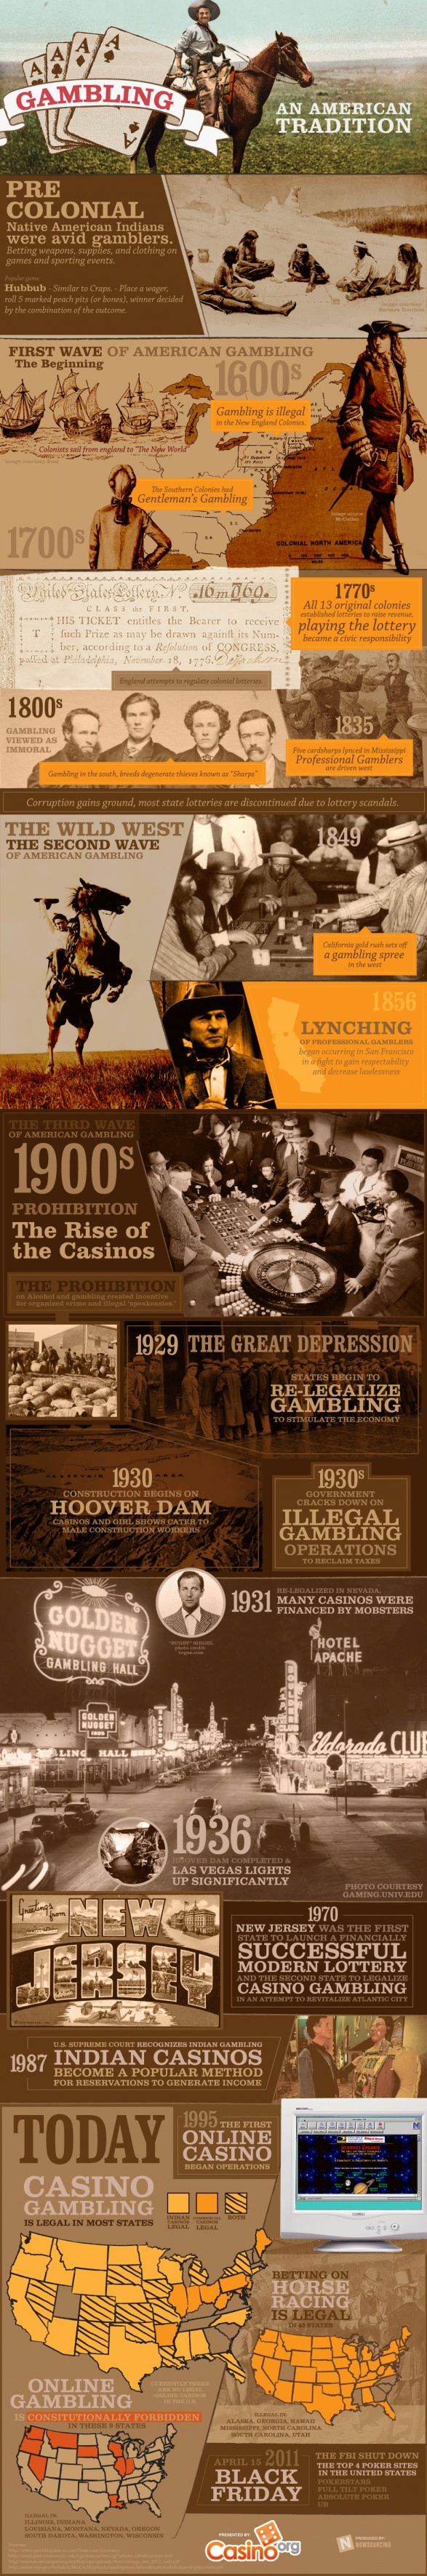 a history of gambling in america History of gambling houses during the early 20th century in america, gambling became outlawed and banned by state legislation and social reformers of.